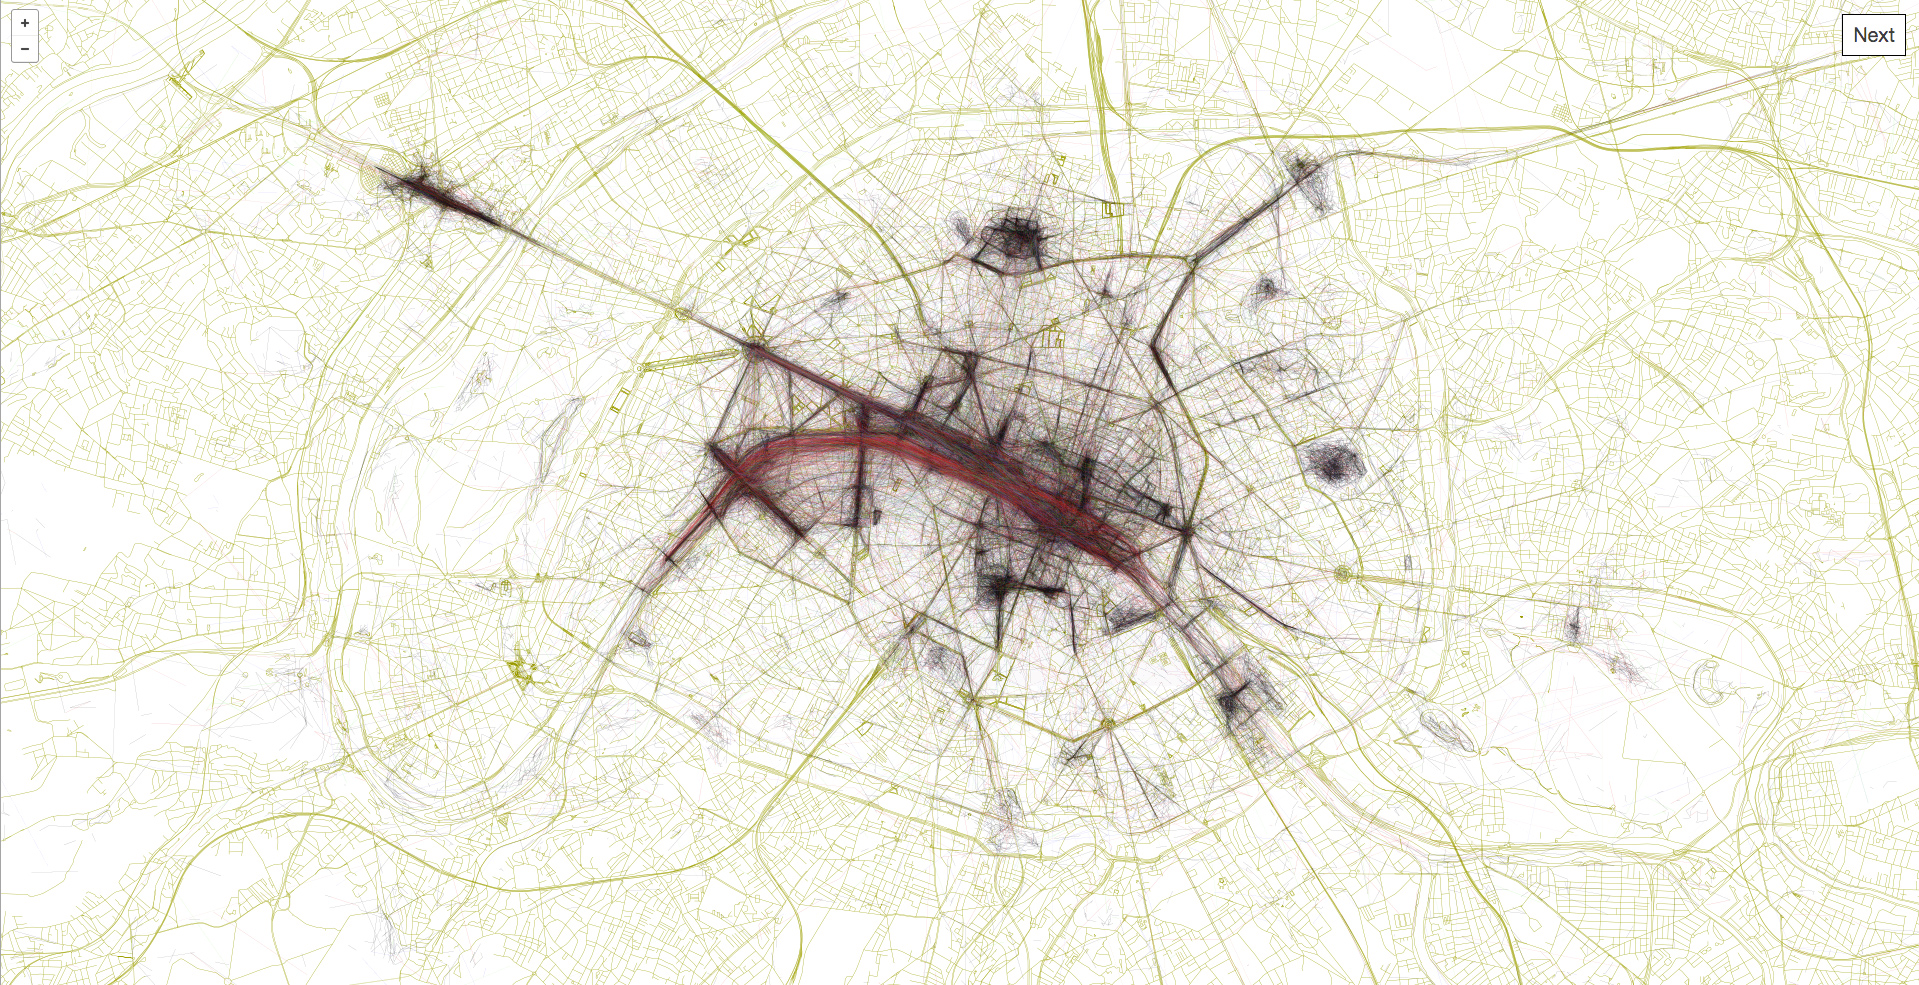 These Pretty City Maps Were Drawn By Our Paths Through Them